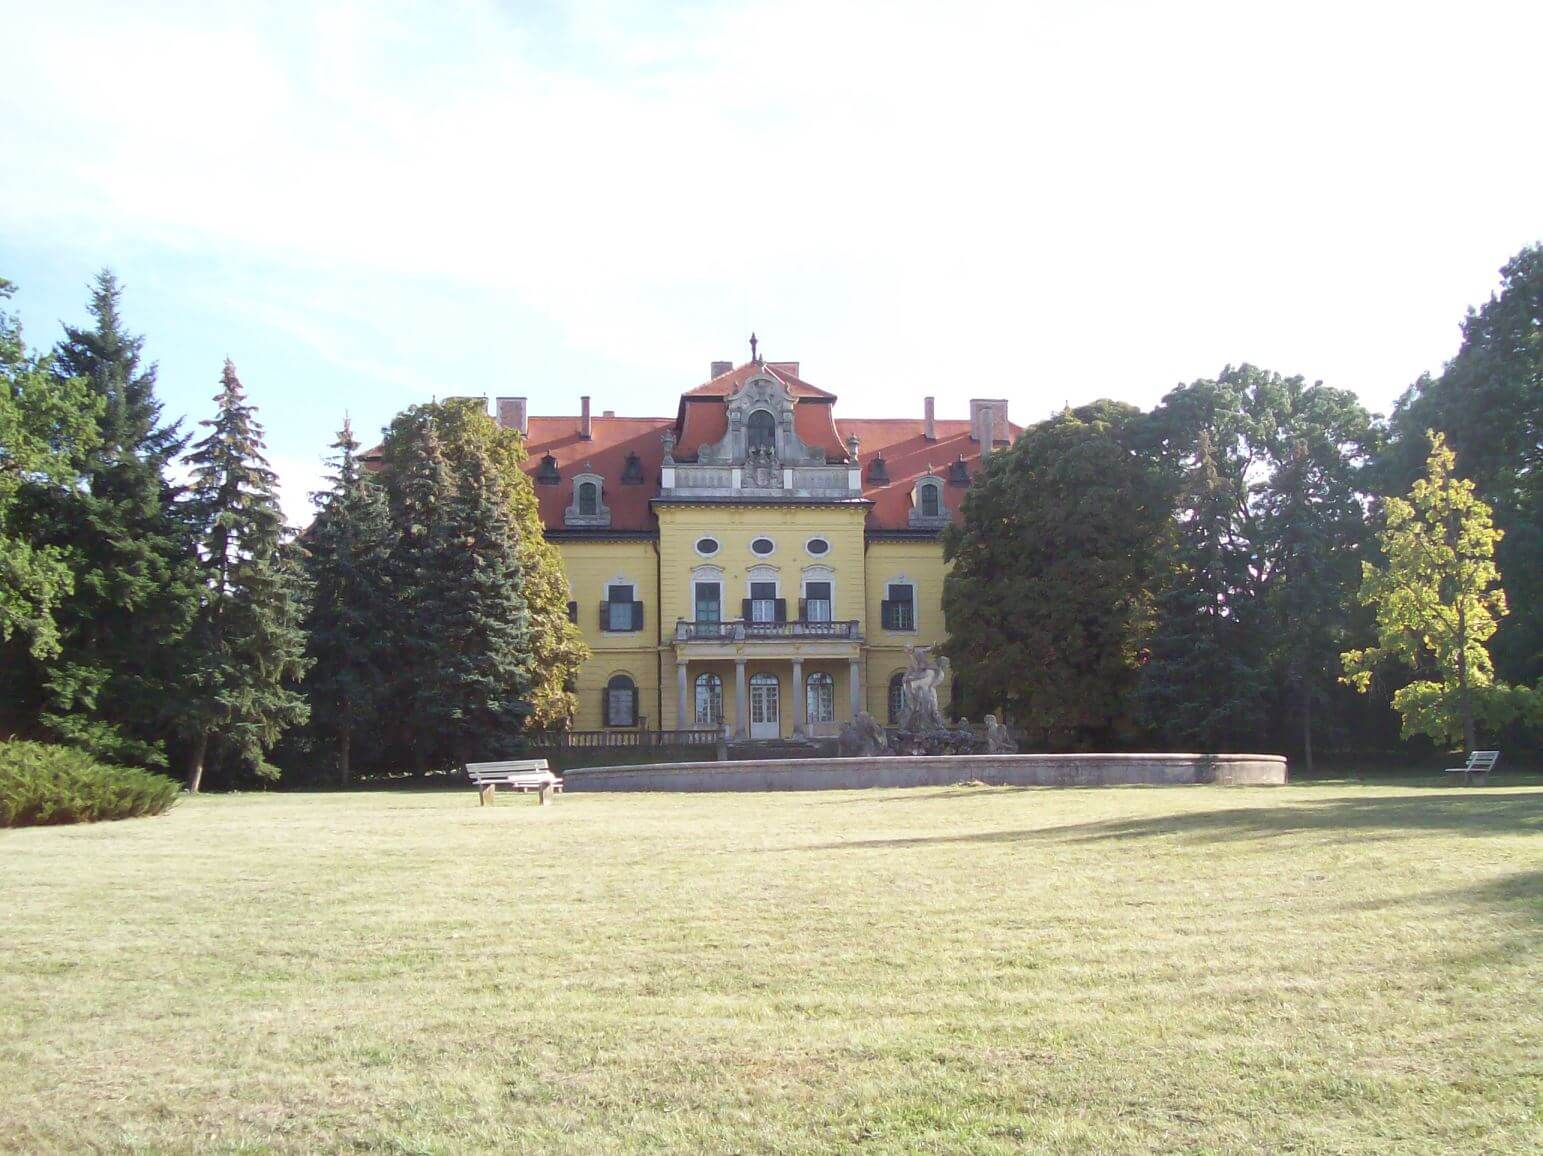 The Károlyi Palace from the back